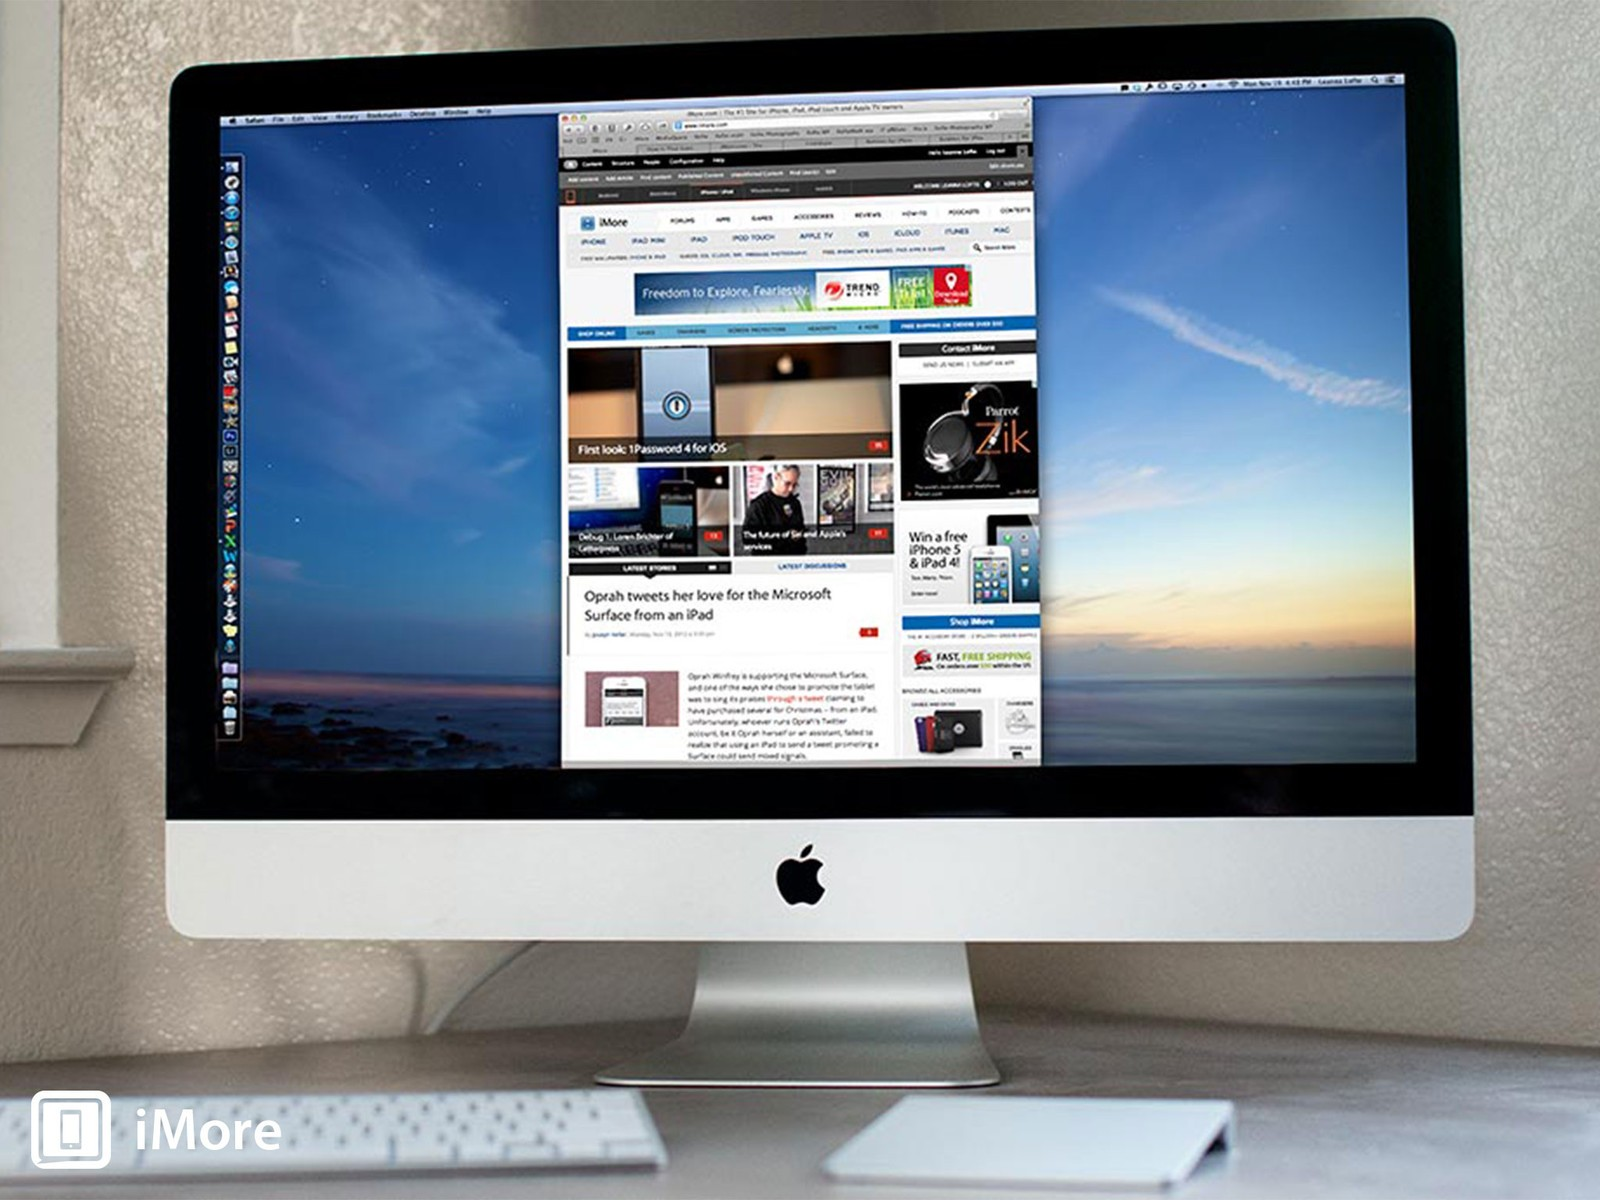 Apple introduces new 21.5-inch iMac starting at 099